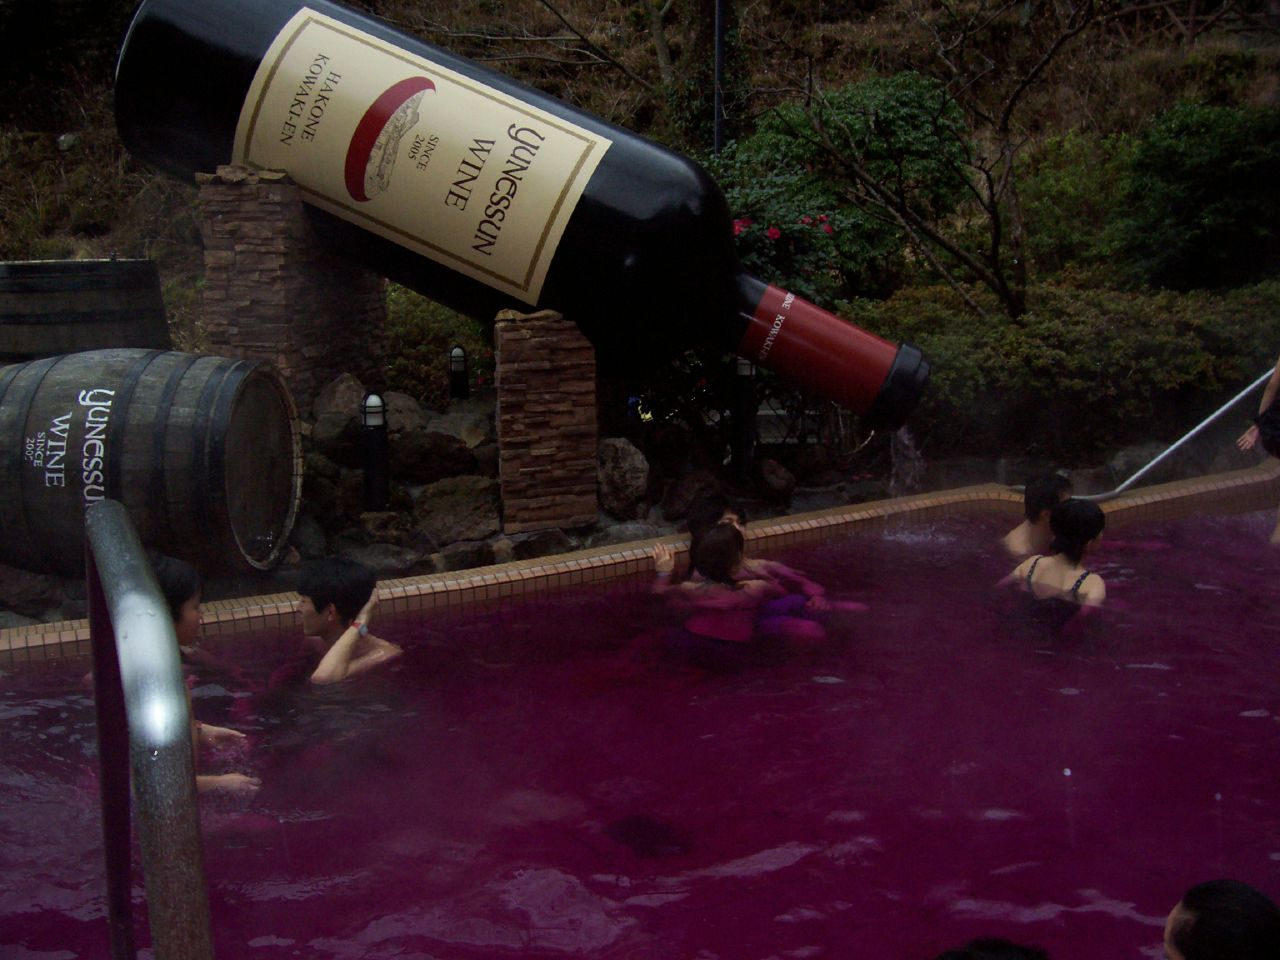 Among all the cool Tokyo attractions the Red Wine Hot Springs may be the most fun